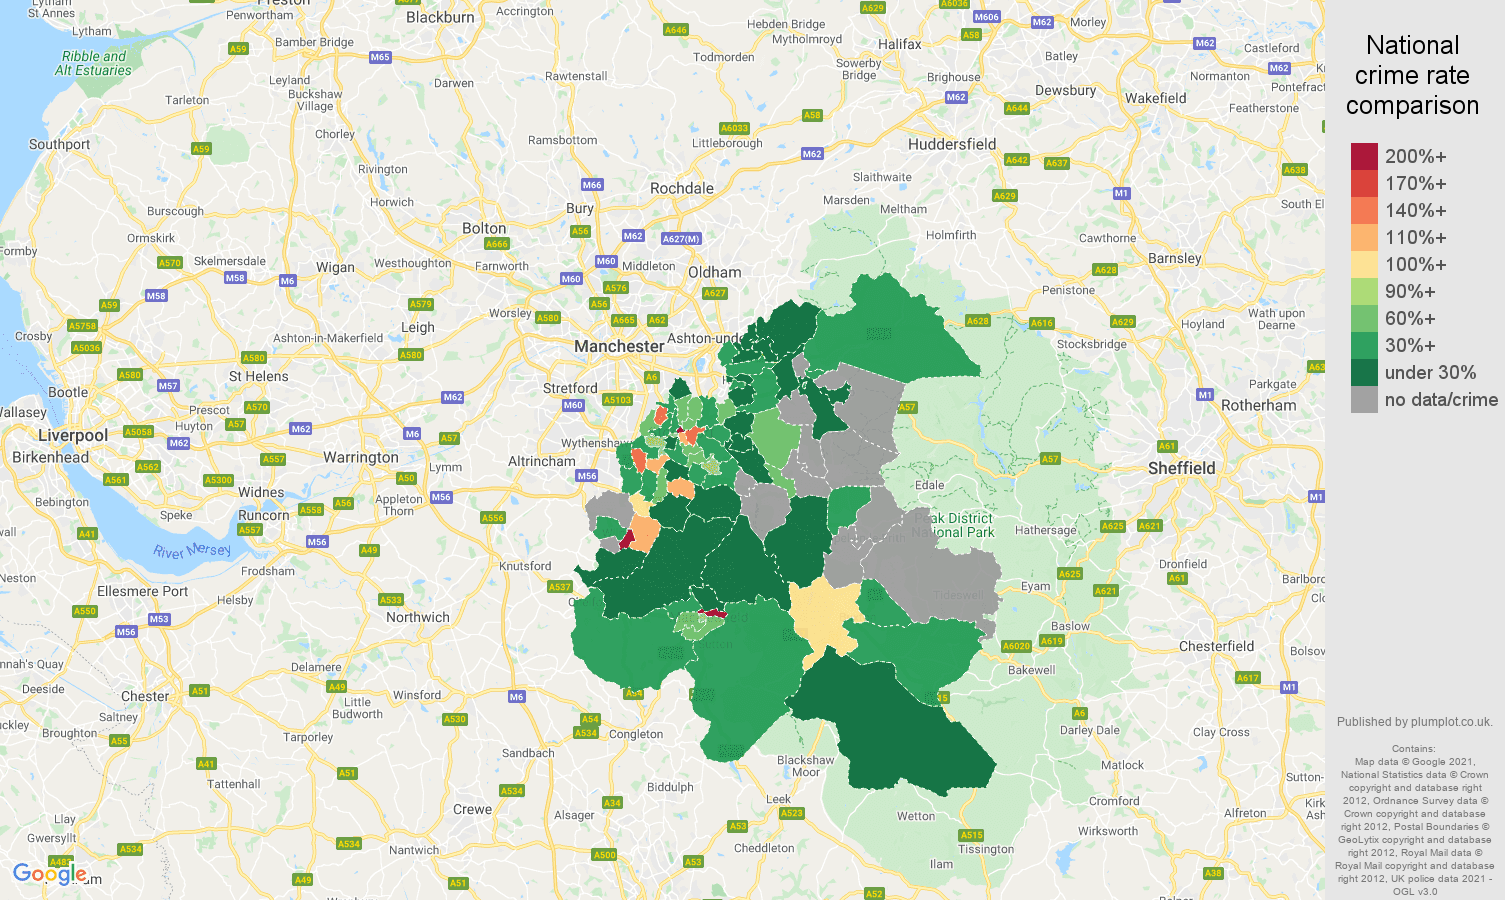 Stockport bicycle theft crime rate comparison map